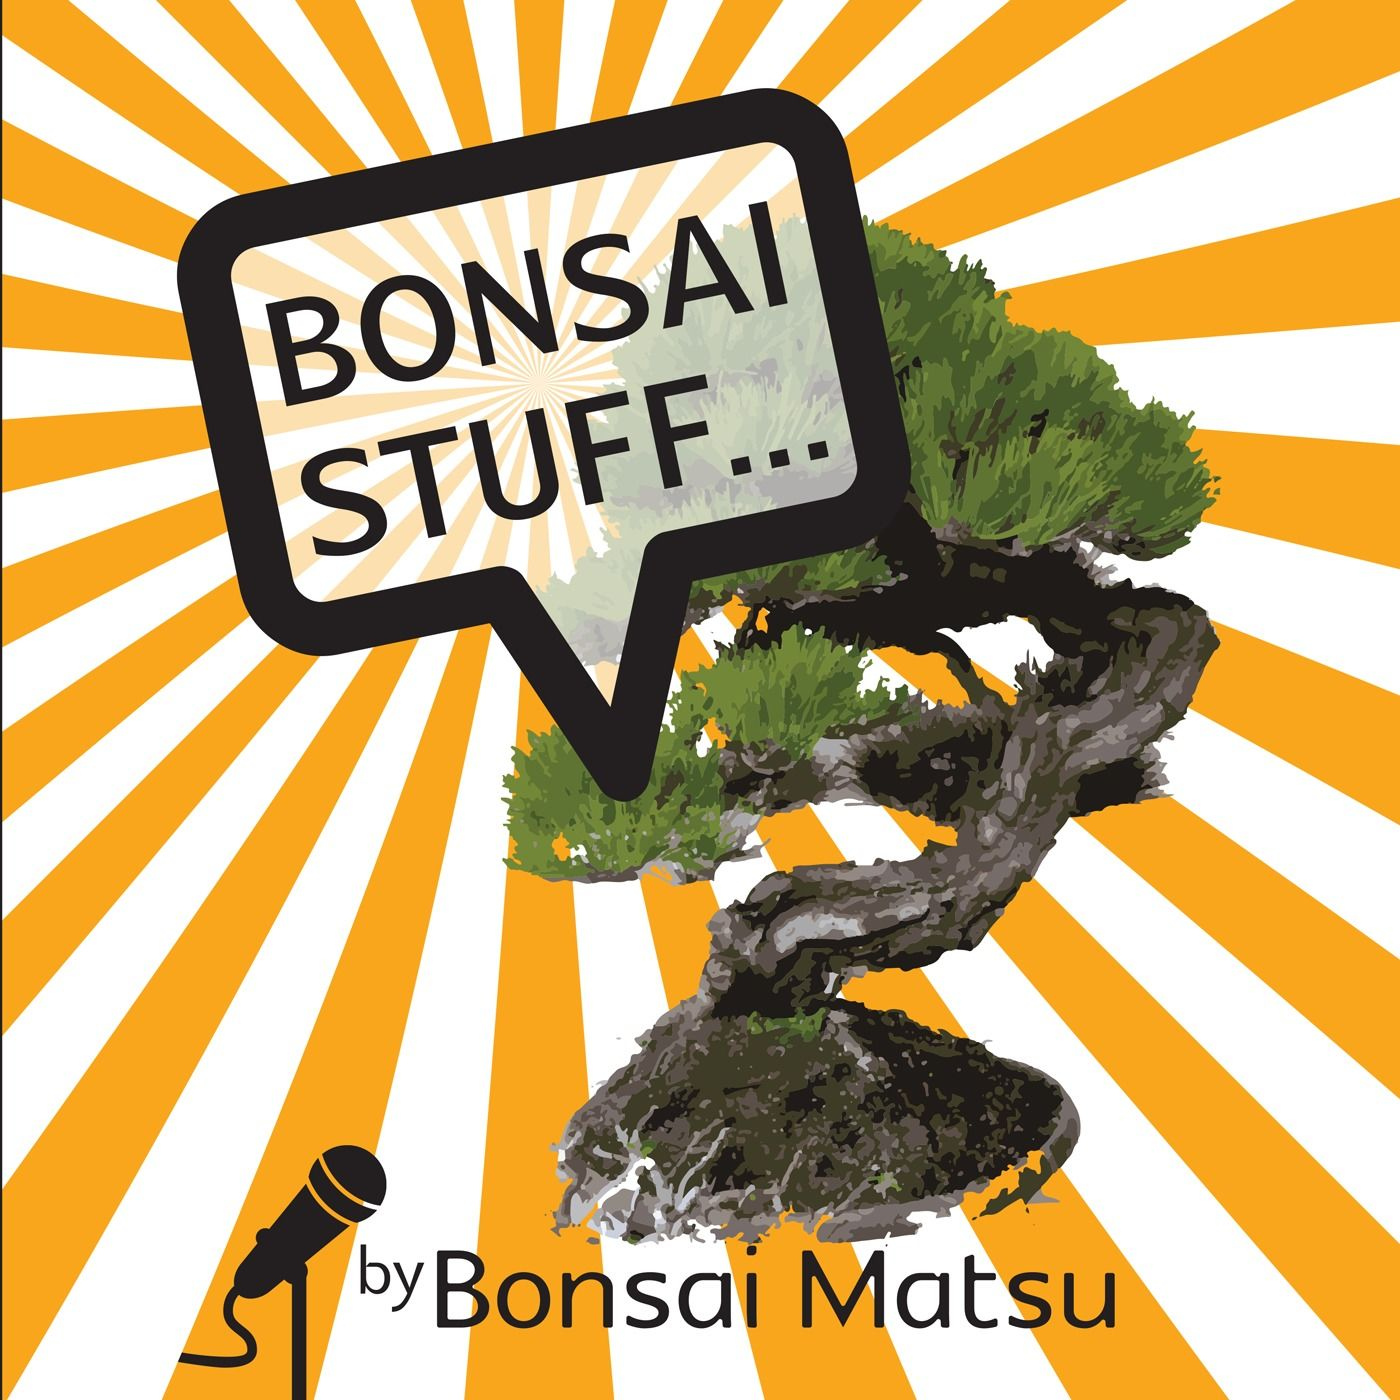 Season 2 Episode 7 – Scots Pines, Lessons from repotting and Is Progress in Bonsai Negative